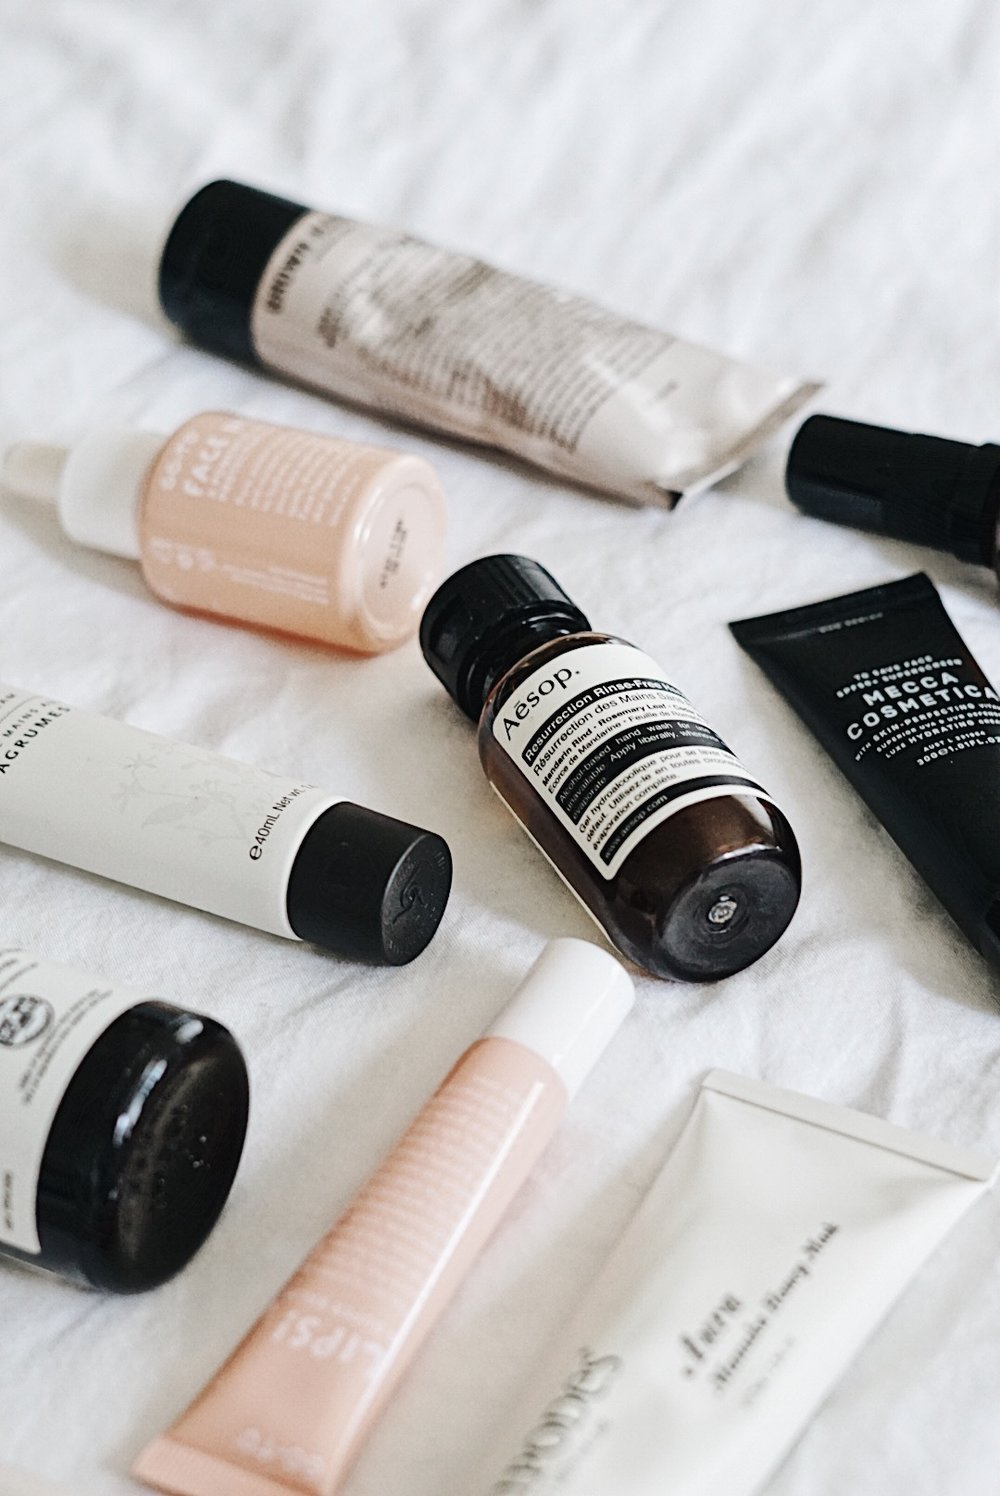 cindyhyue-amourjnfr-mecca-cosmetica-antipodes-jurlique-go-to-skincare-australian-beauty